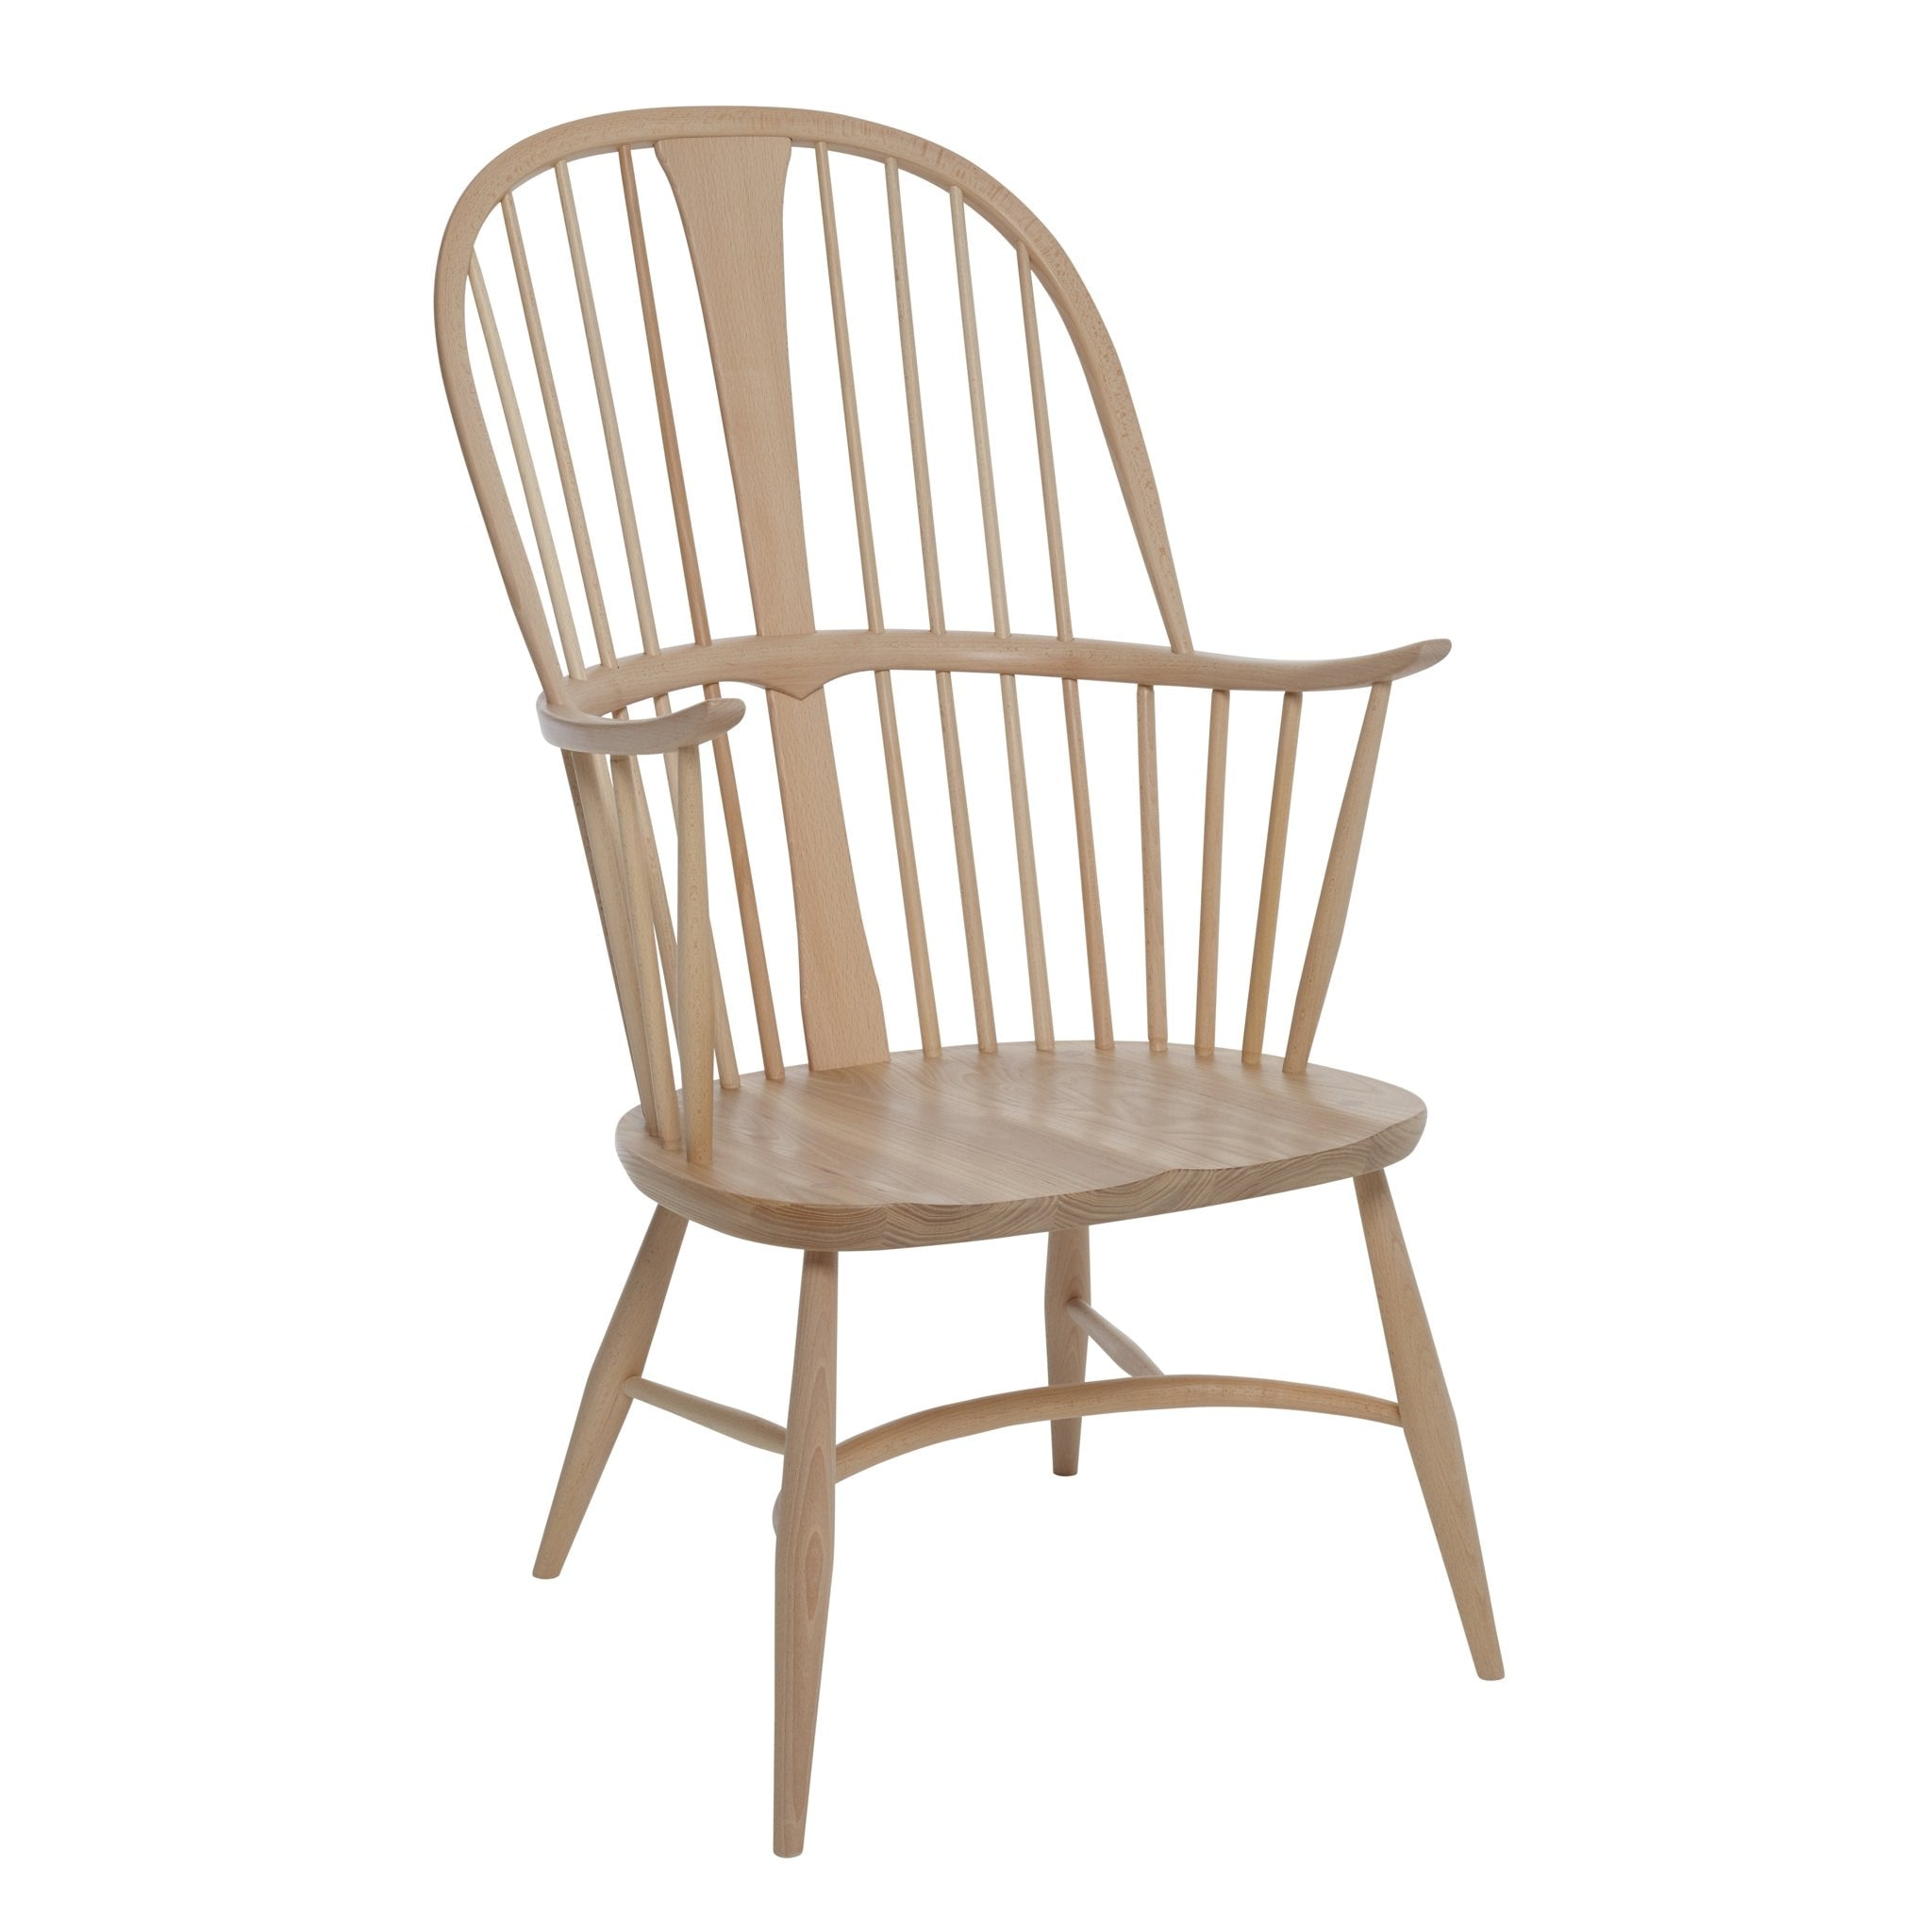 Originals Chairmakers Chair by Ercol